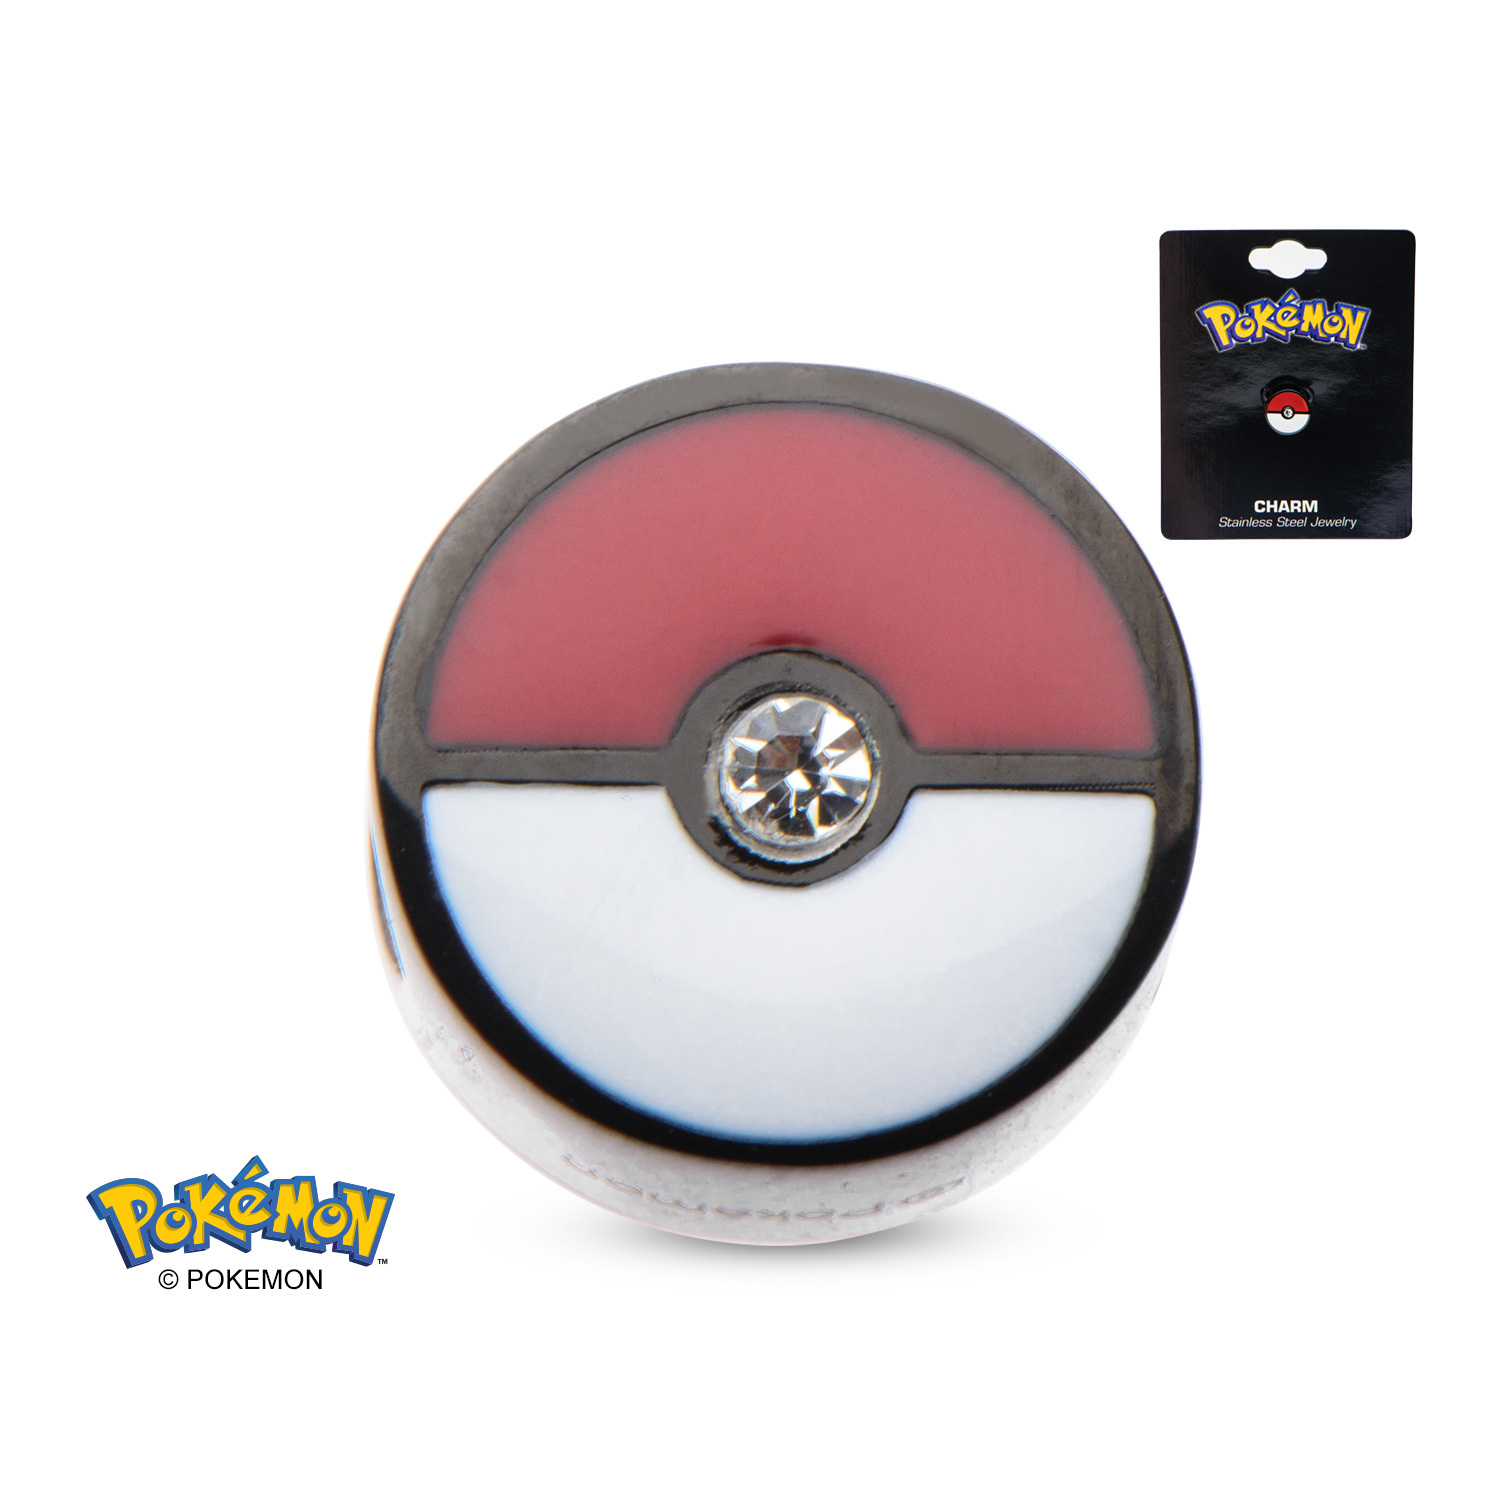 Pokemon Pokeball Charm image